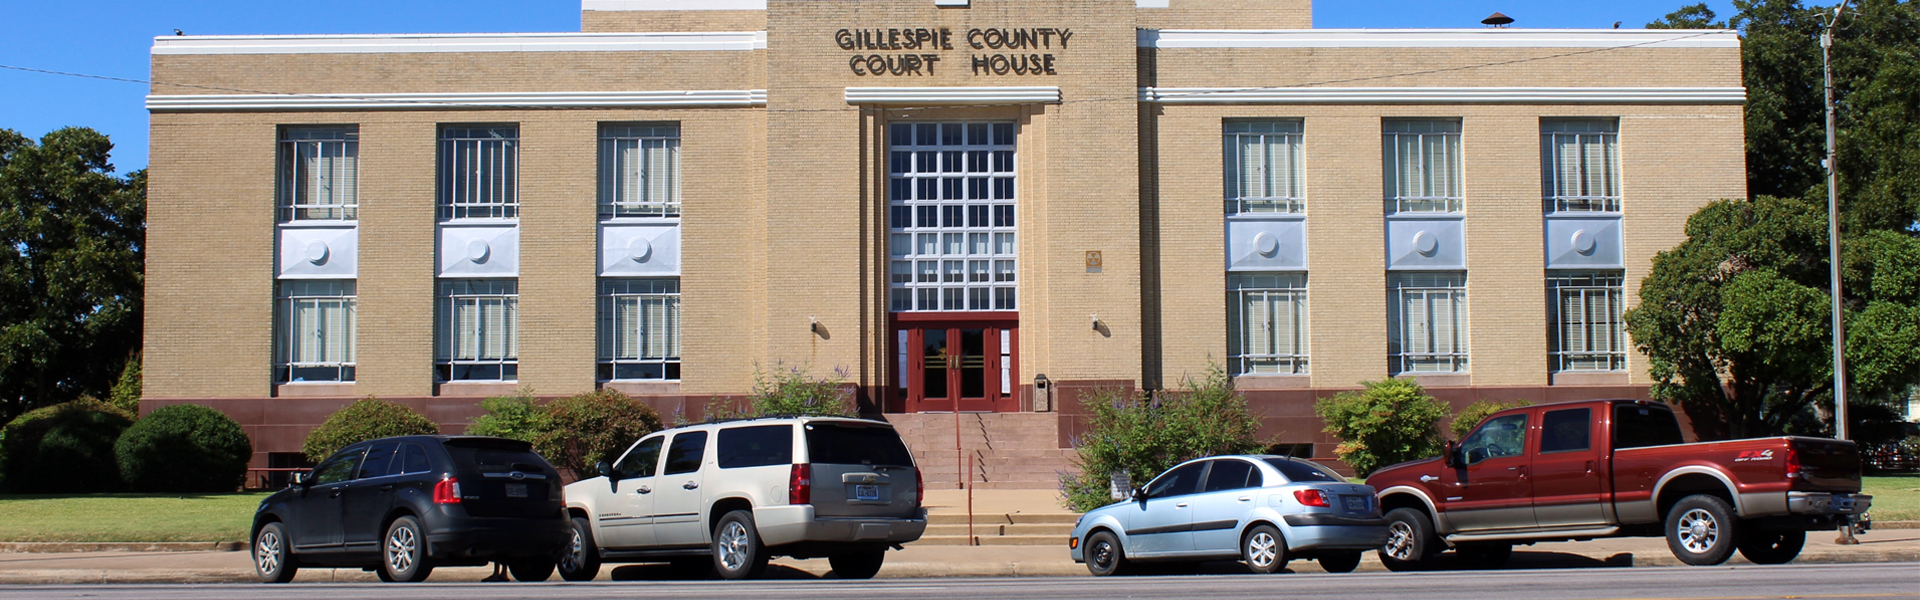 Car Insurance Quotes Gillespie County